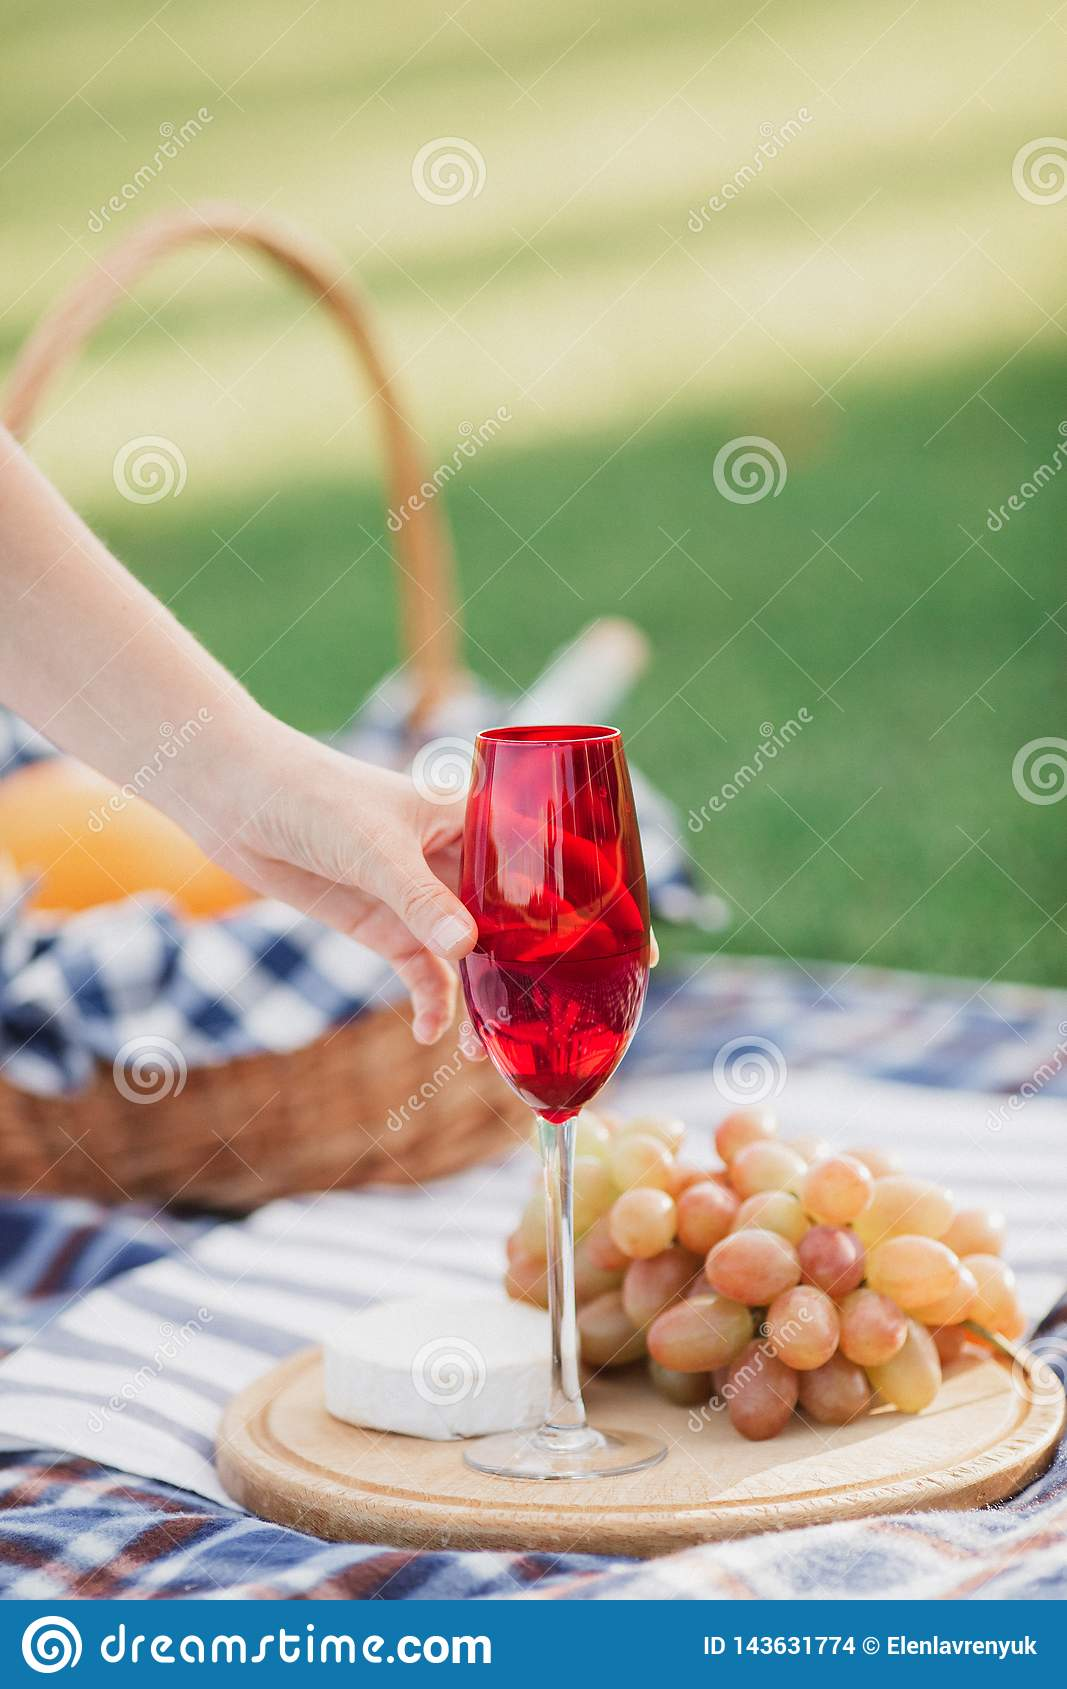 Picnic basket with drinks, food and fruit on green grass outside in summer park